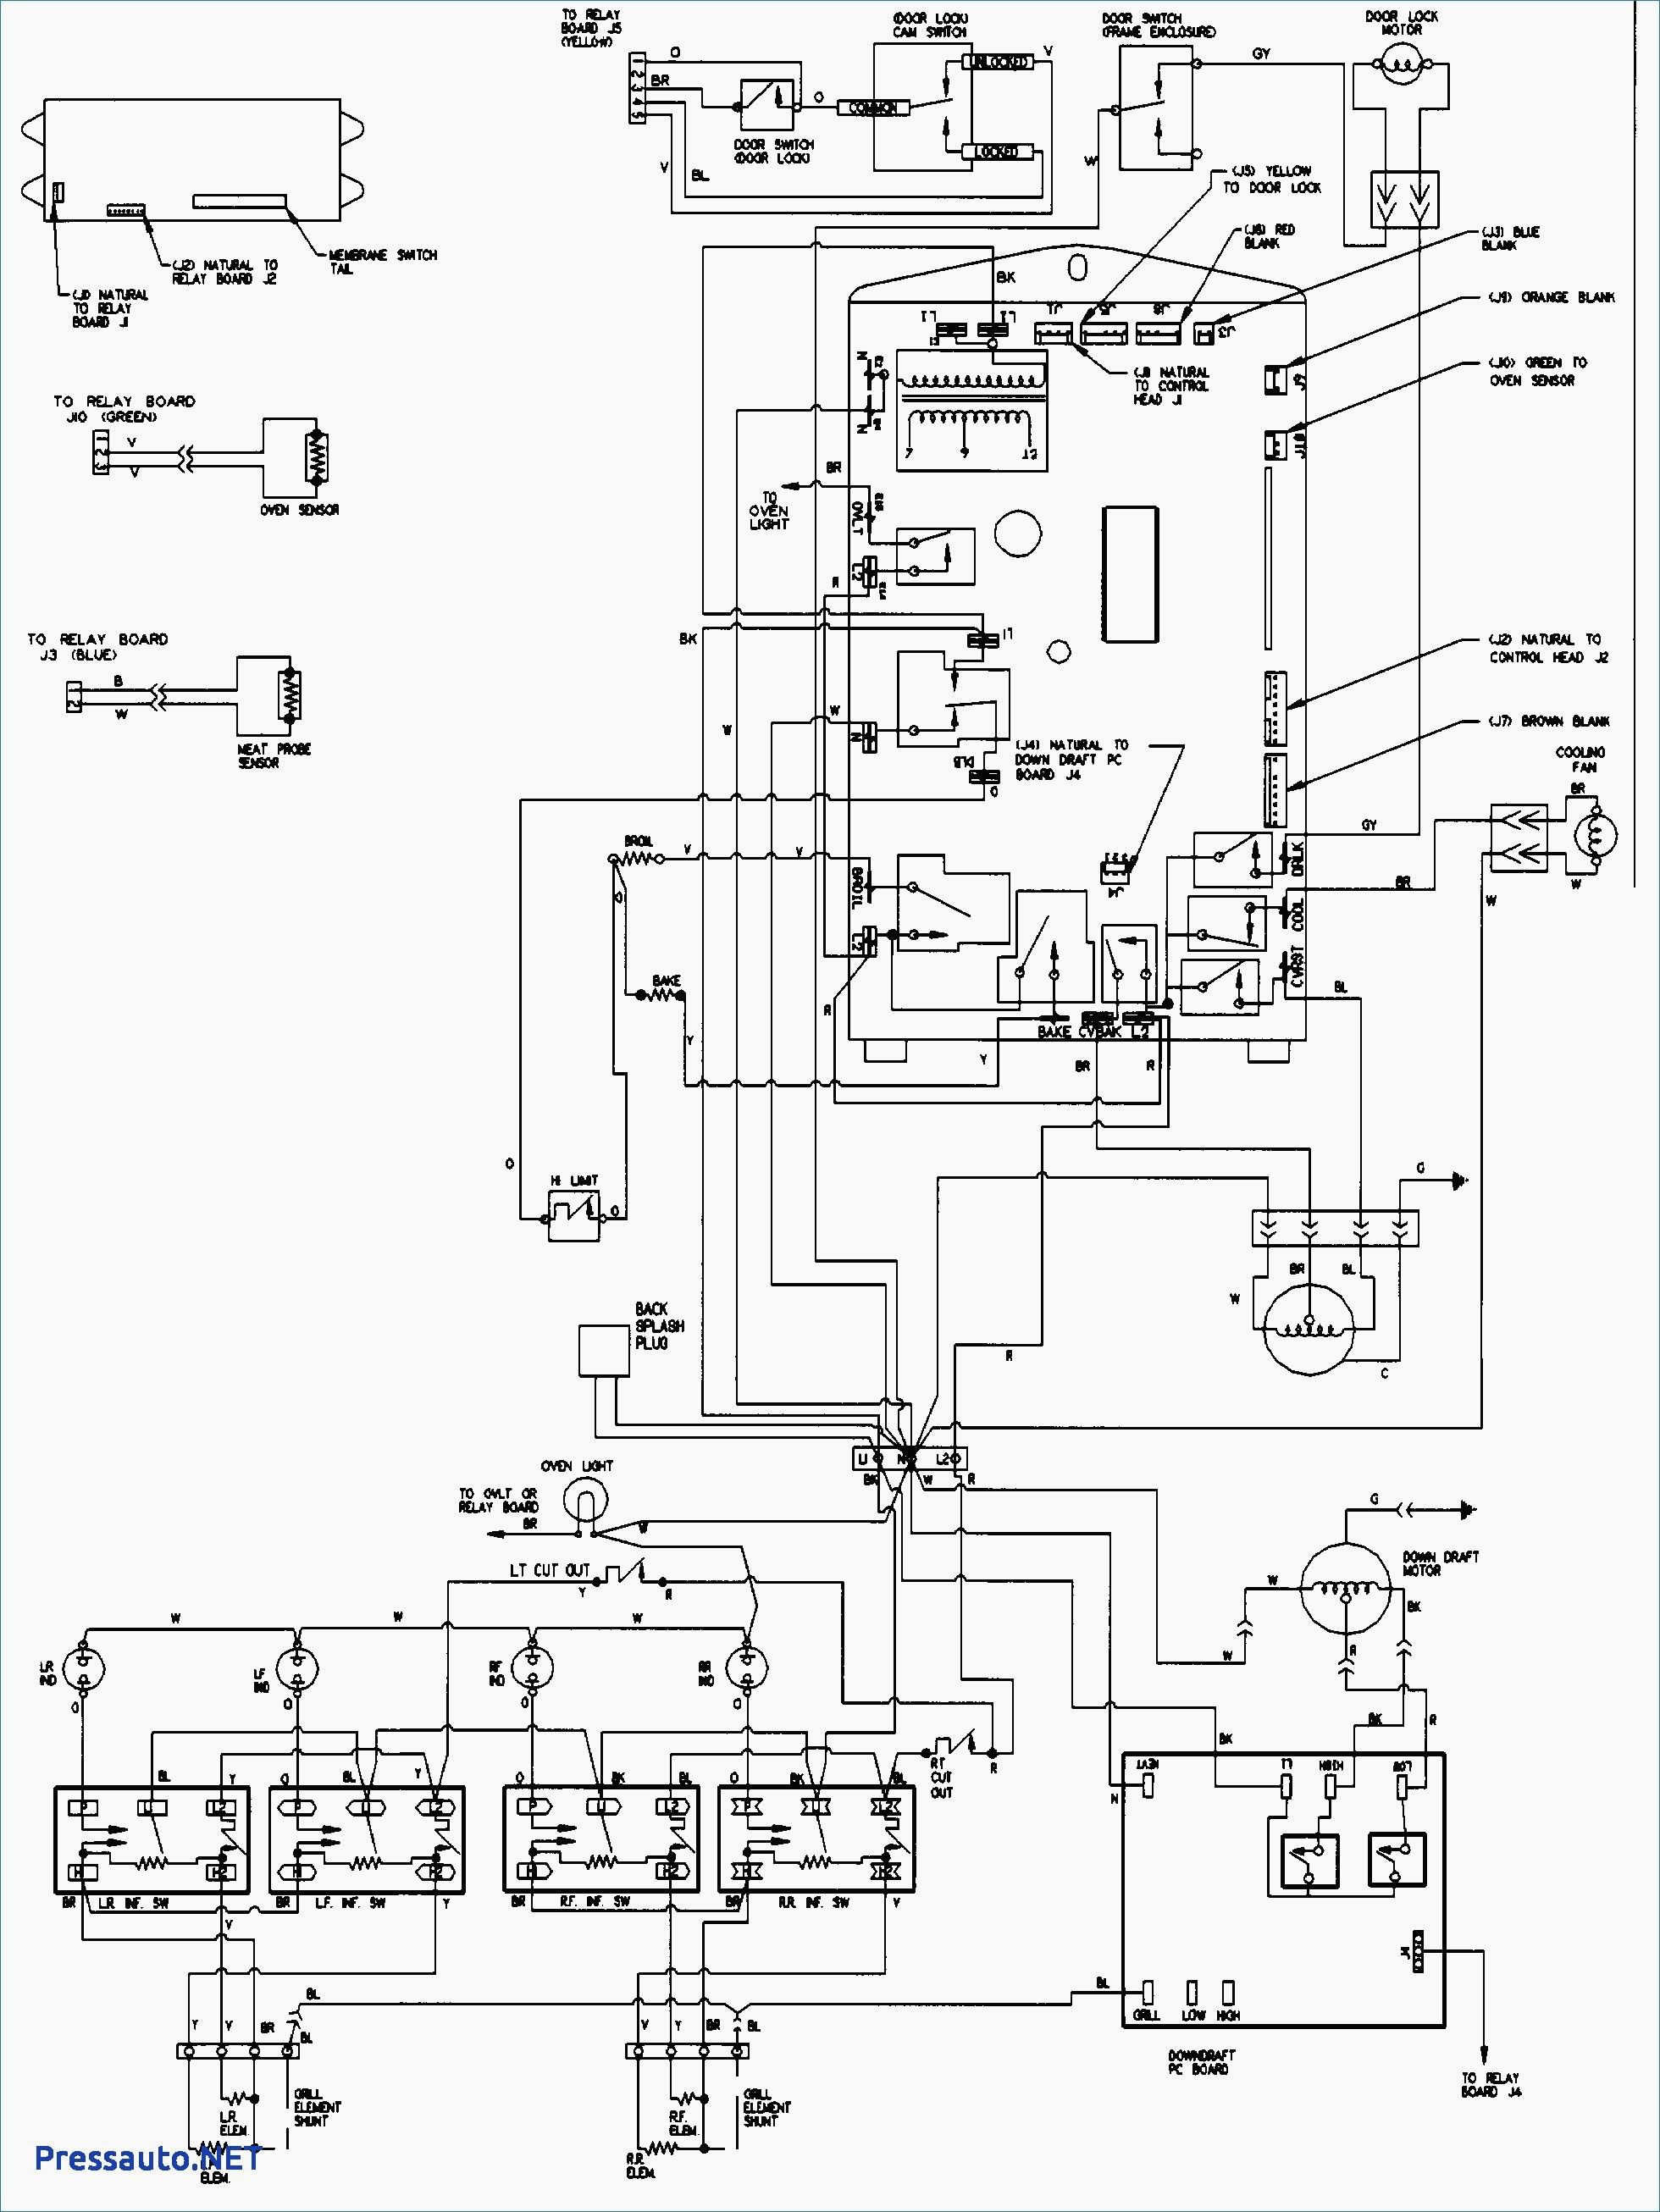 hight resolution of gas furnace wiring diagram gas furnace wiring diagrams explainedgas furnace wiring ssu trusted wiring diagram gas